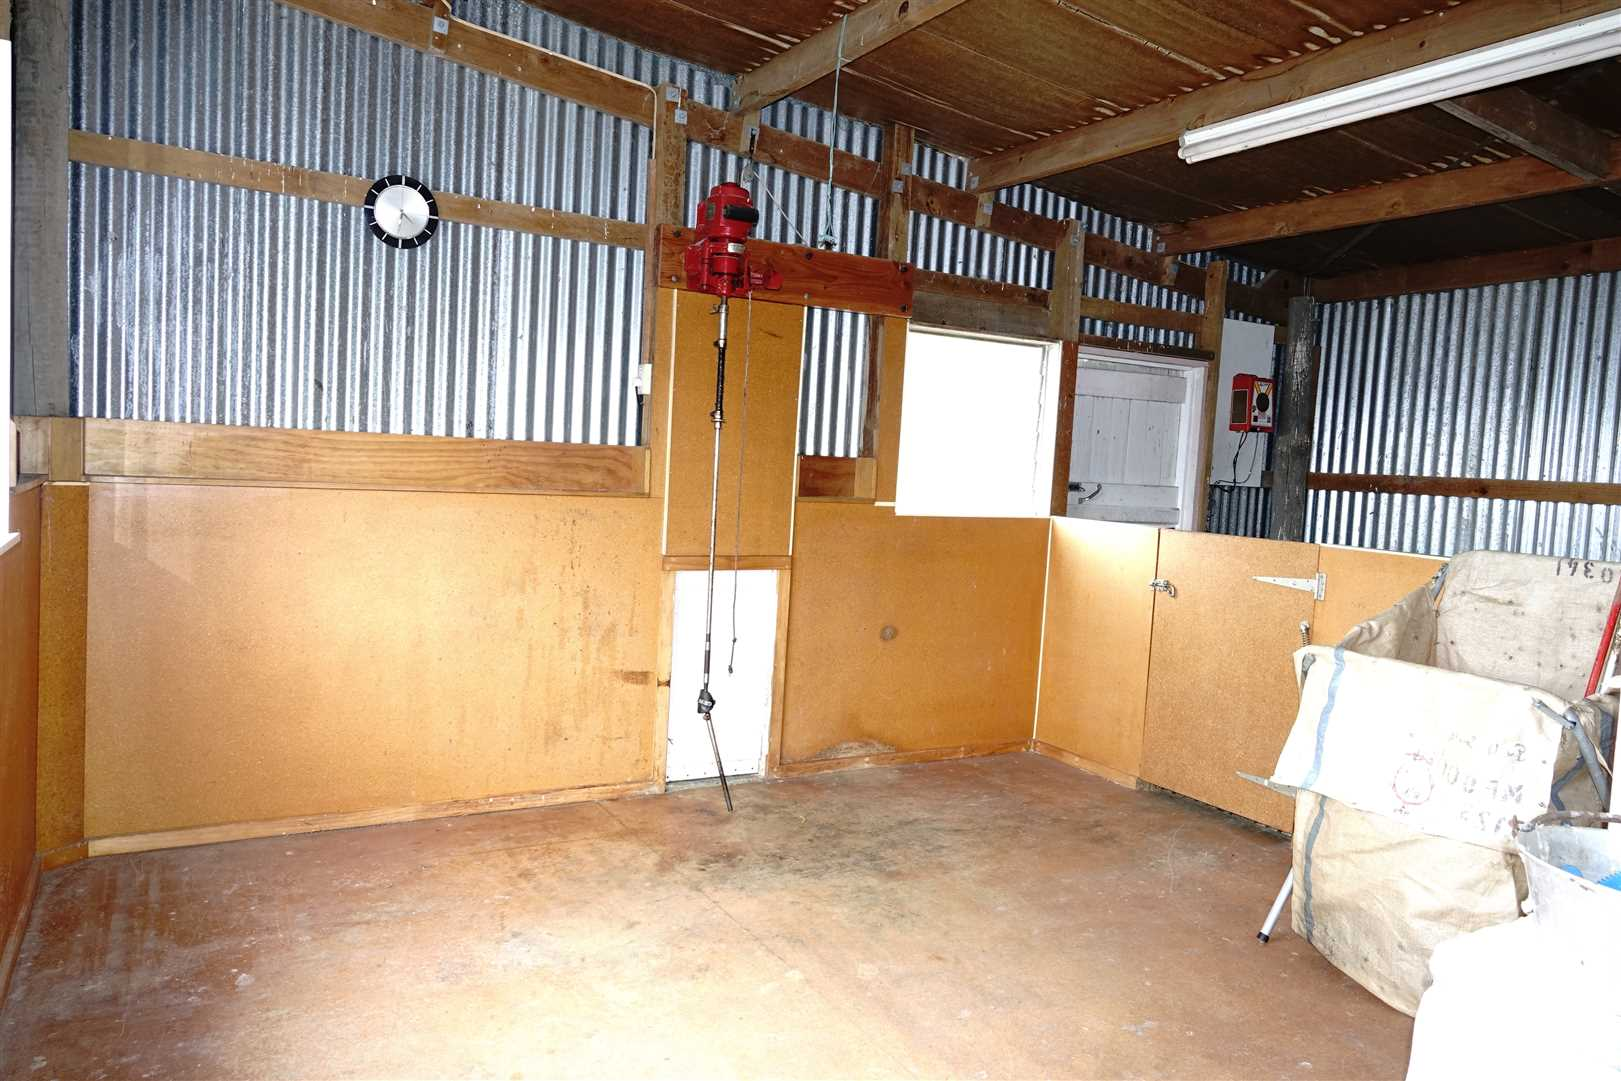 woolshed area with catching pens